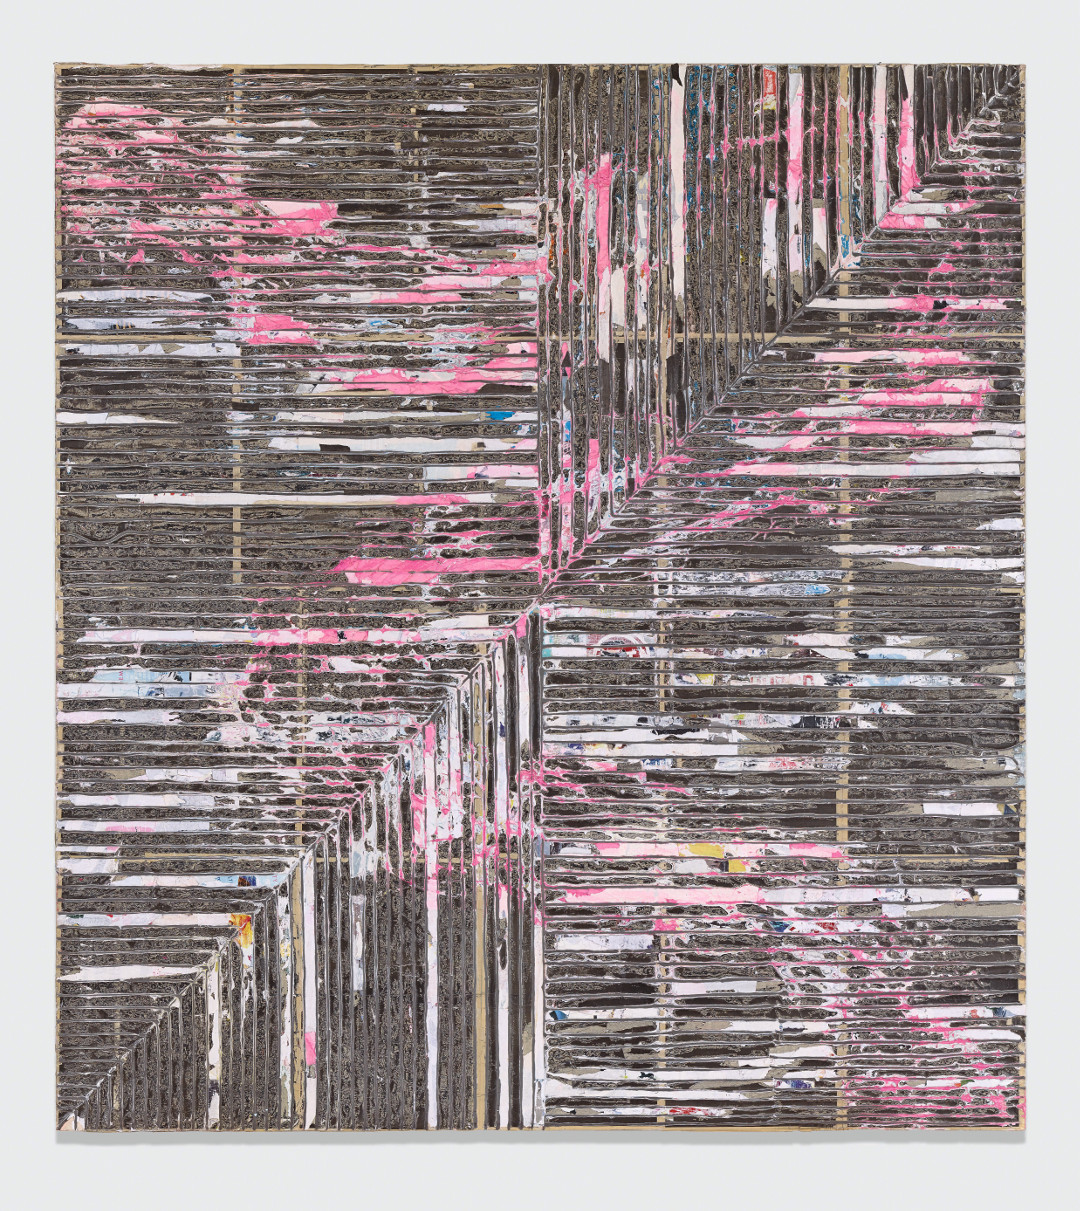 Mark Bradford, Crack Between the Floorboards, 2014. Mixed-media collage on canvas, 132 1/8 x 120 ¼ x 2 1/8 in. (335.5 x 305.5 x 5.5 cm). Picture credit: courtesy the artist and Hauser & Wirth, © Mark Bradford; photo: Joshua White